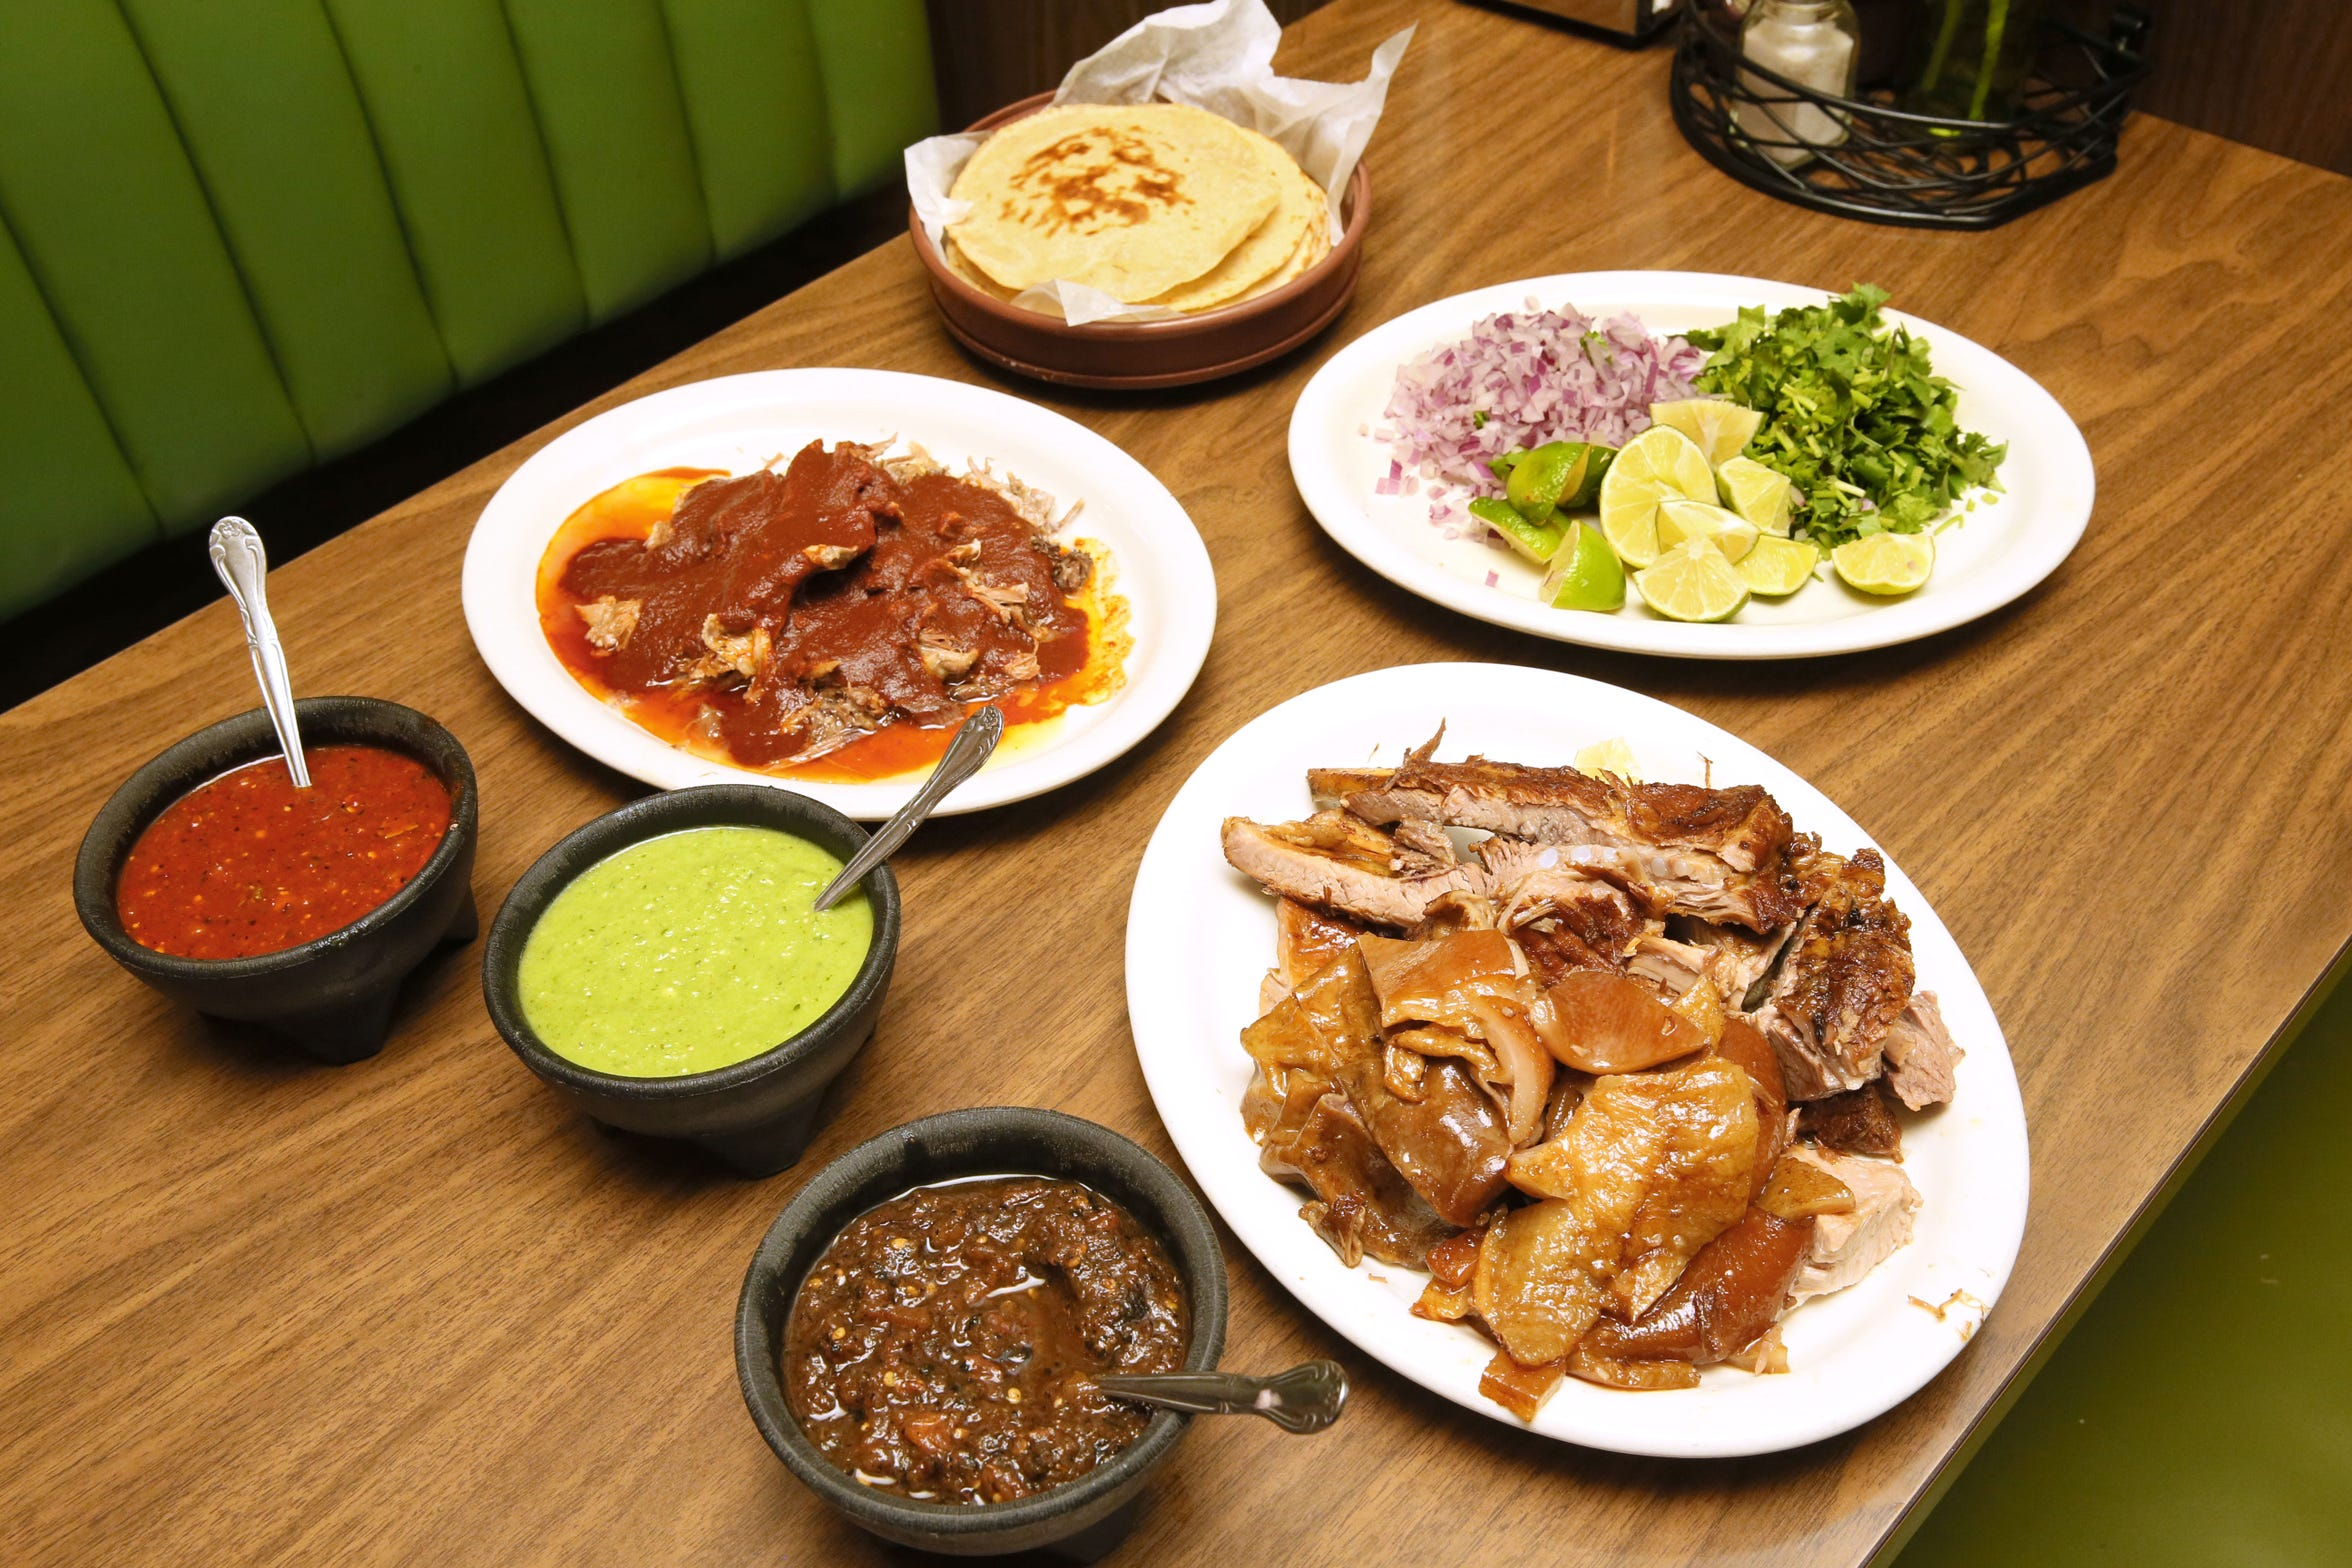 You can dine family style at Carnitas Don Lucho, 565 W. Lincoln Ave., a weekends-only restaurant. The meal includes salsas (roja, tota and molcajete are shown from left), a choice of meat such as lamb in red sauce or carnitas (fried pork), plus onions, cilantro, lime and handmade tortillas.